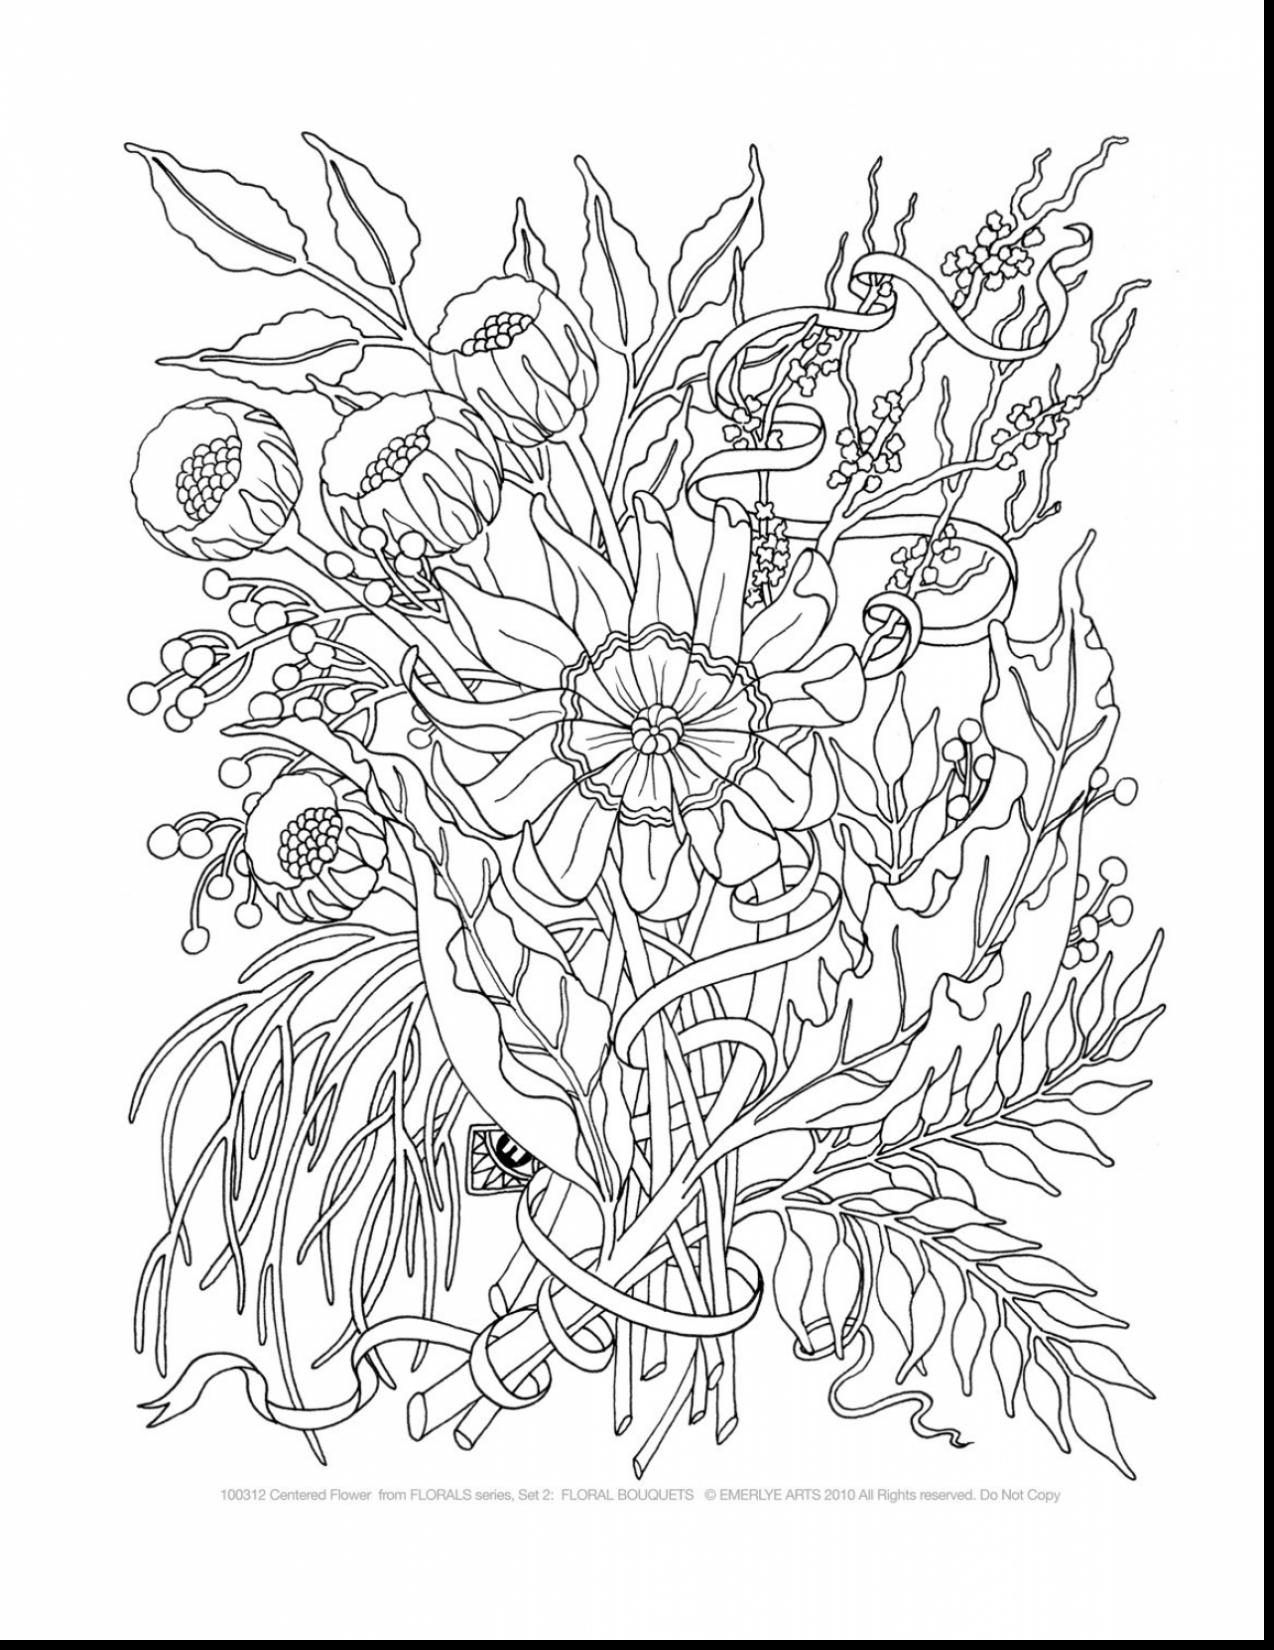 advanced flower coloring pages effortfulg advanced flower coloring pages flower advanced coloring pages